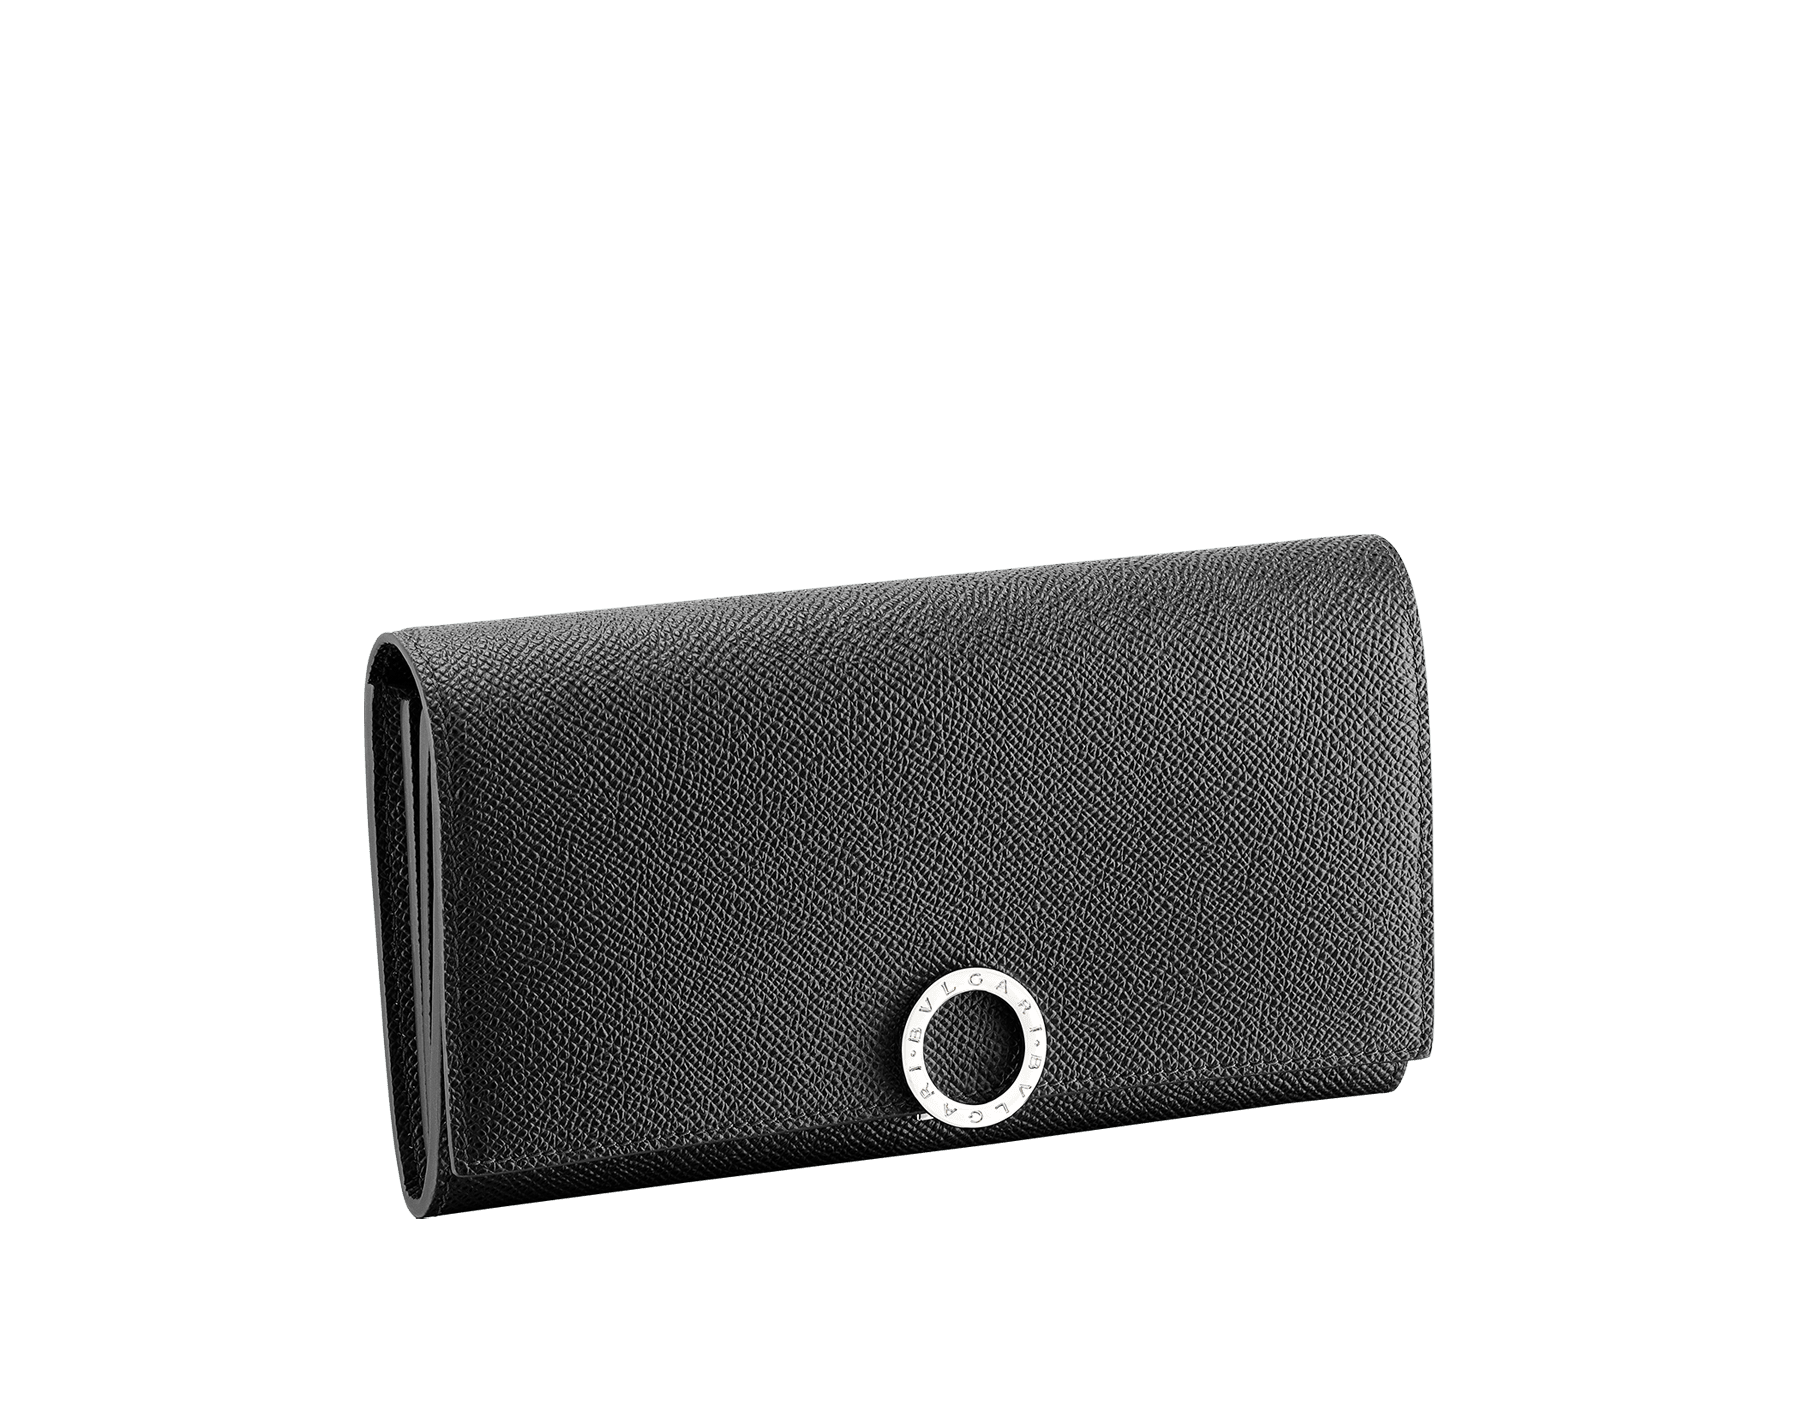 BVLGARI BVLGARI wallet pochette in black grain calf leather. Iconic logo clip closure in palladium plated brass. 289378 image 1